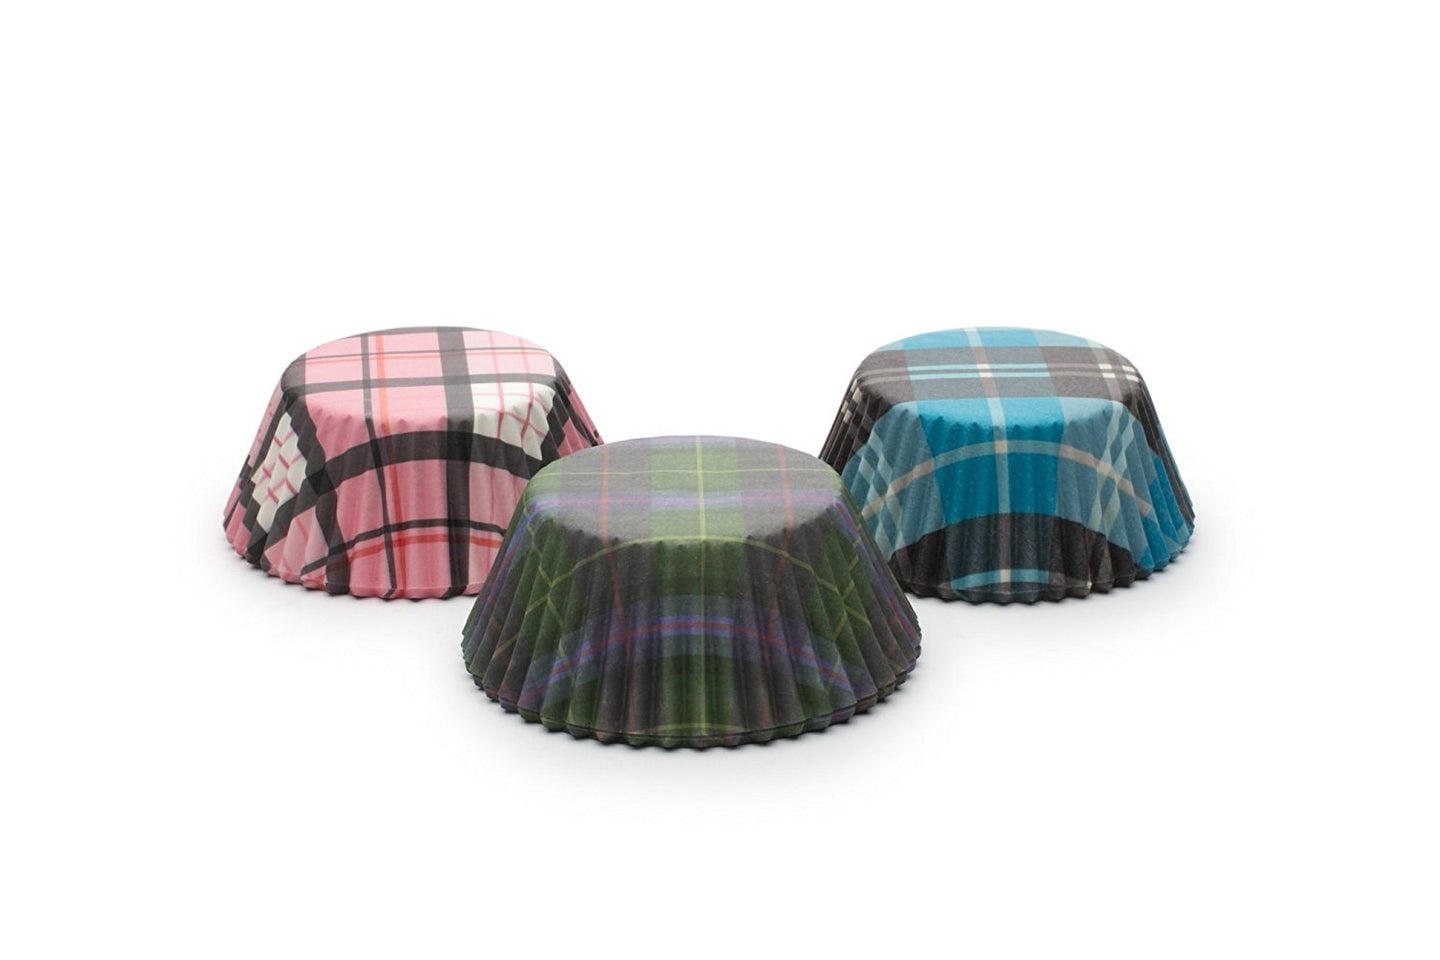 Fox Run Plaid Bake Cup Set, Standard, 75 Cups, Multi-Color